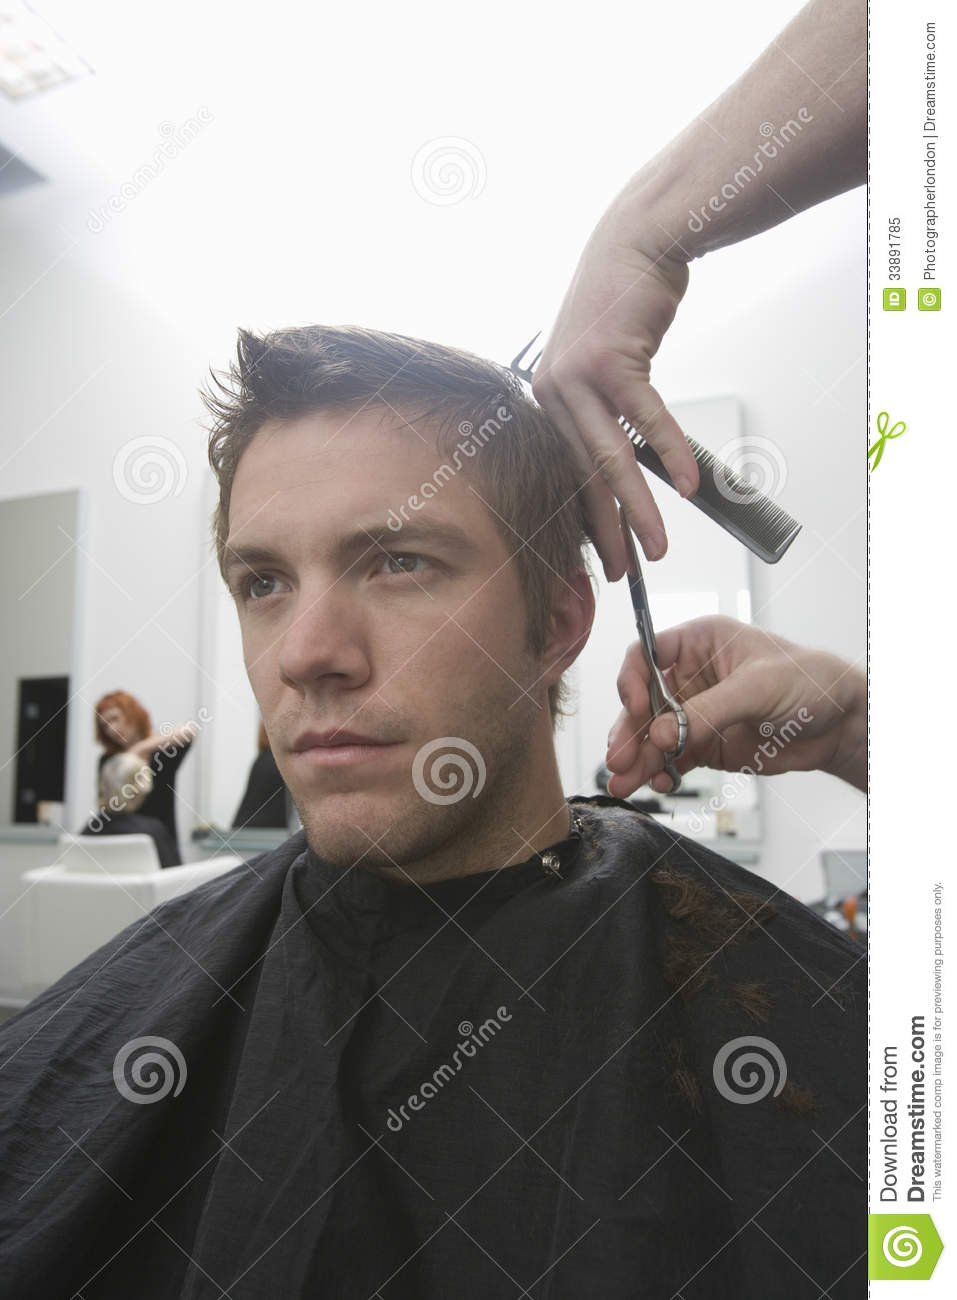 Man getting haircut in hair salon royalty free stock photo for Salon younga